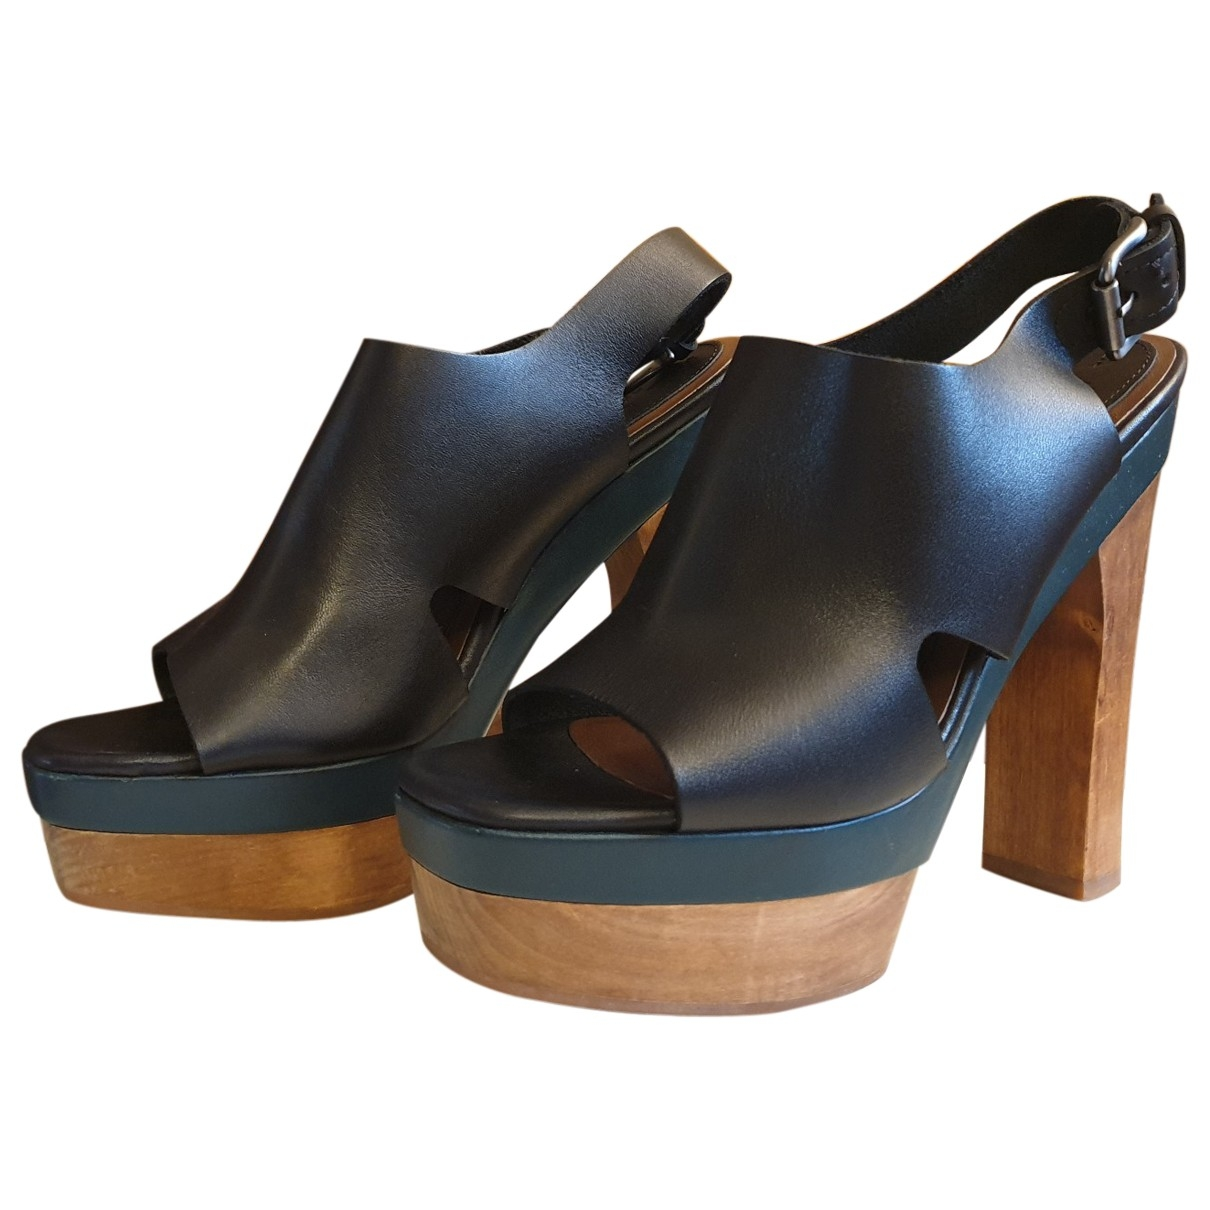 Marni For H&m \N Black Leather Mules & Clogs for Women 36 EU